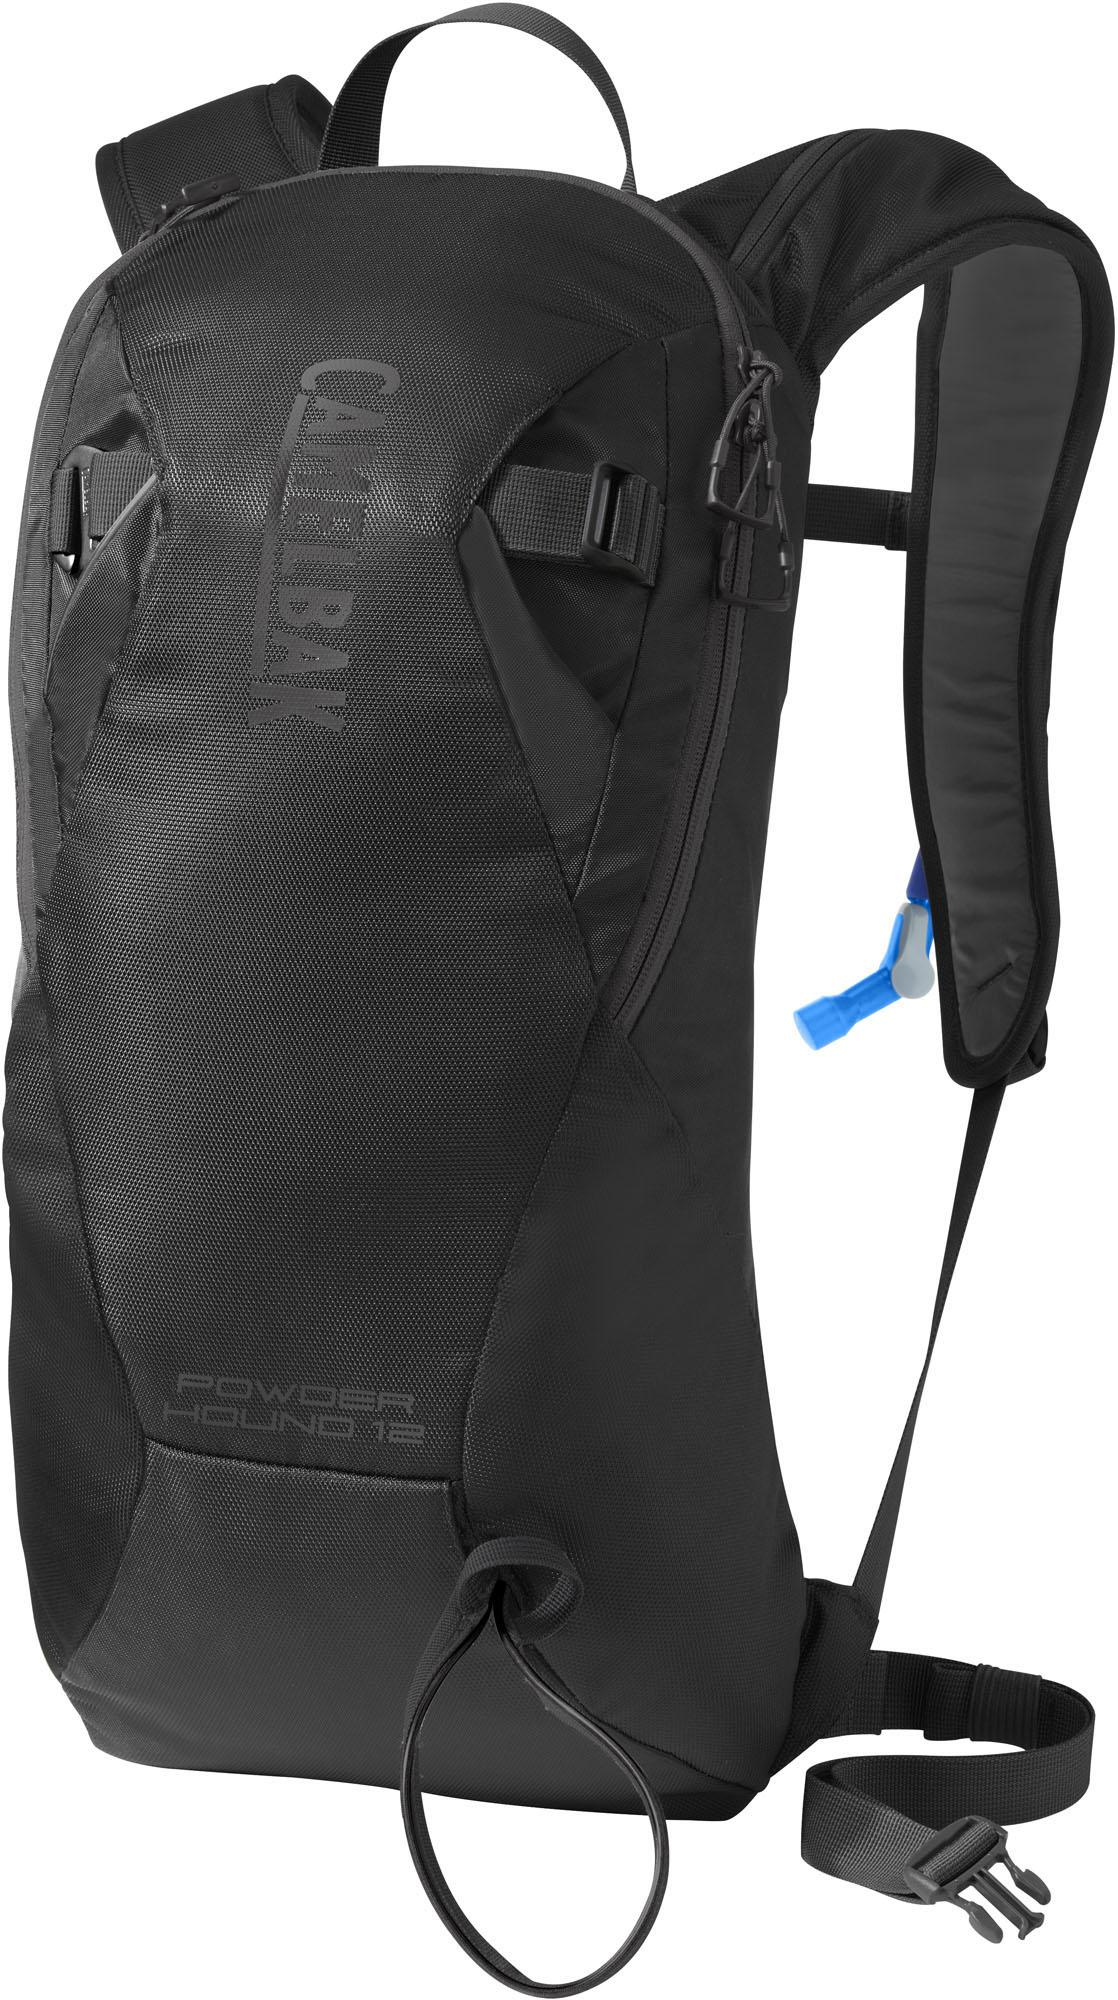 CamelBak Powderhound pack in Black